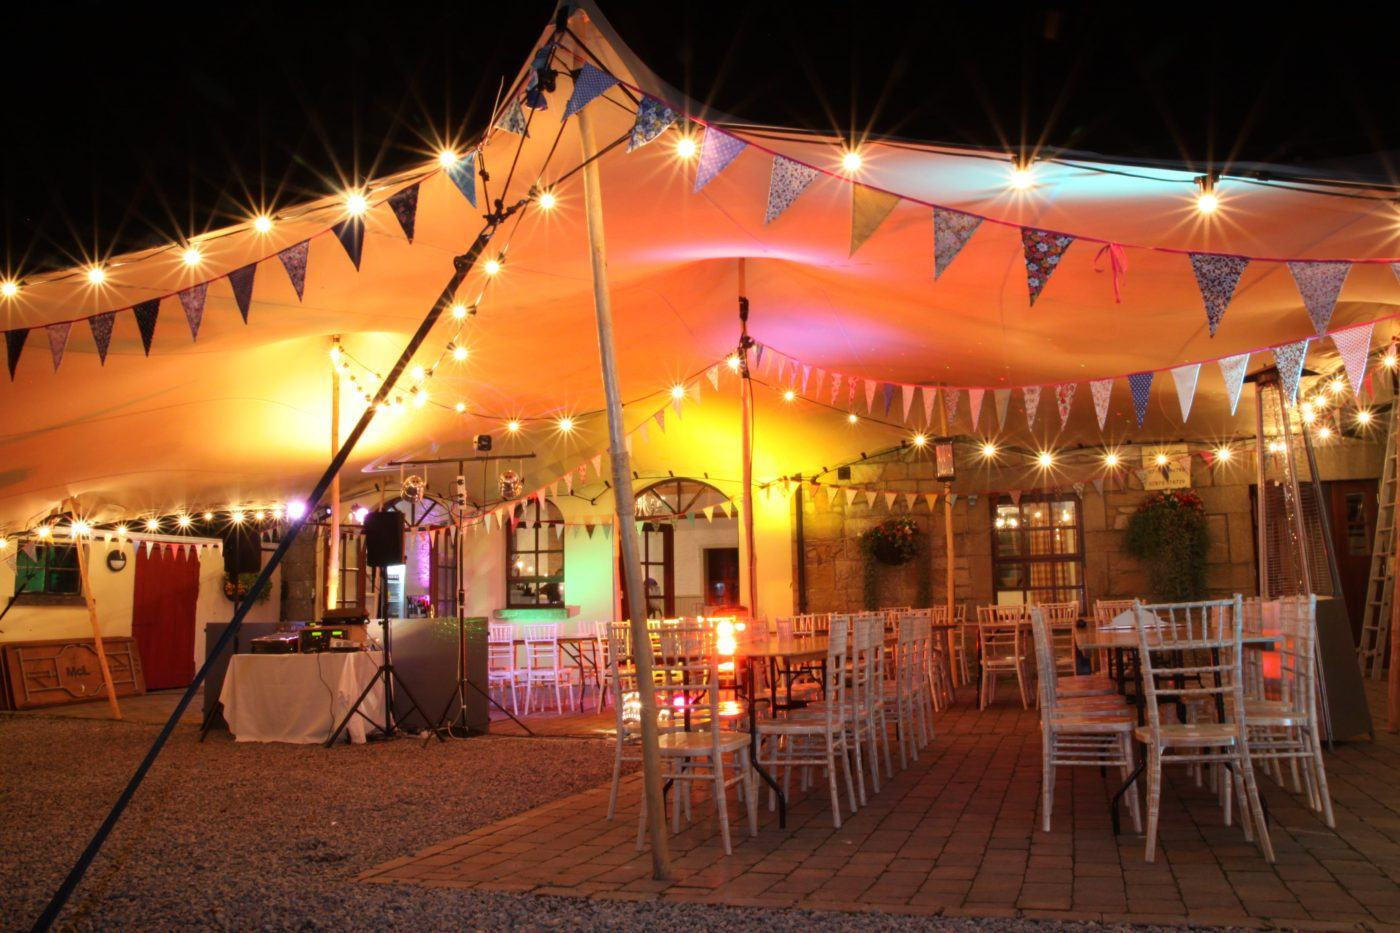 The Coach house with an extended Marquee decorated for a wedding at blessingbourne estate